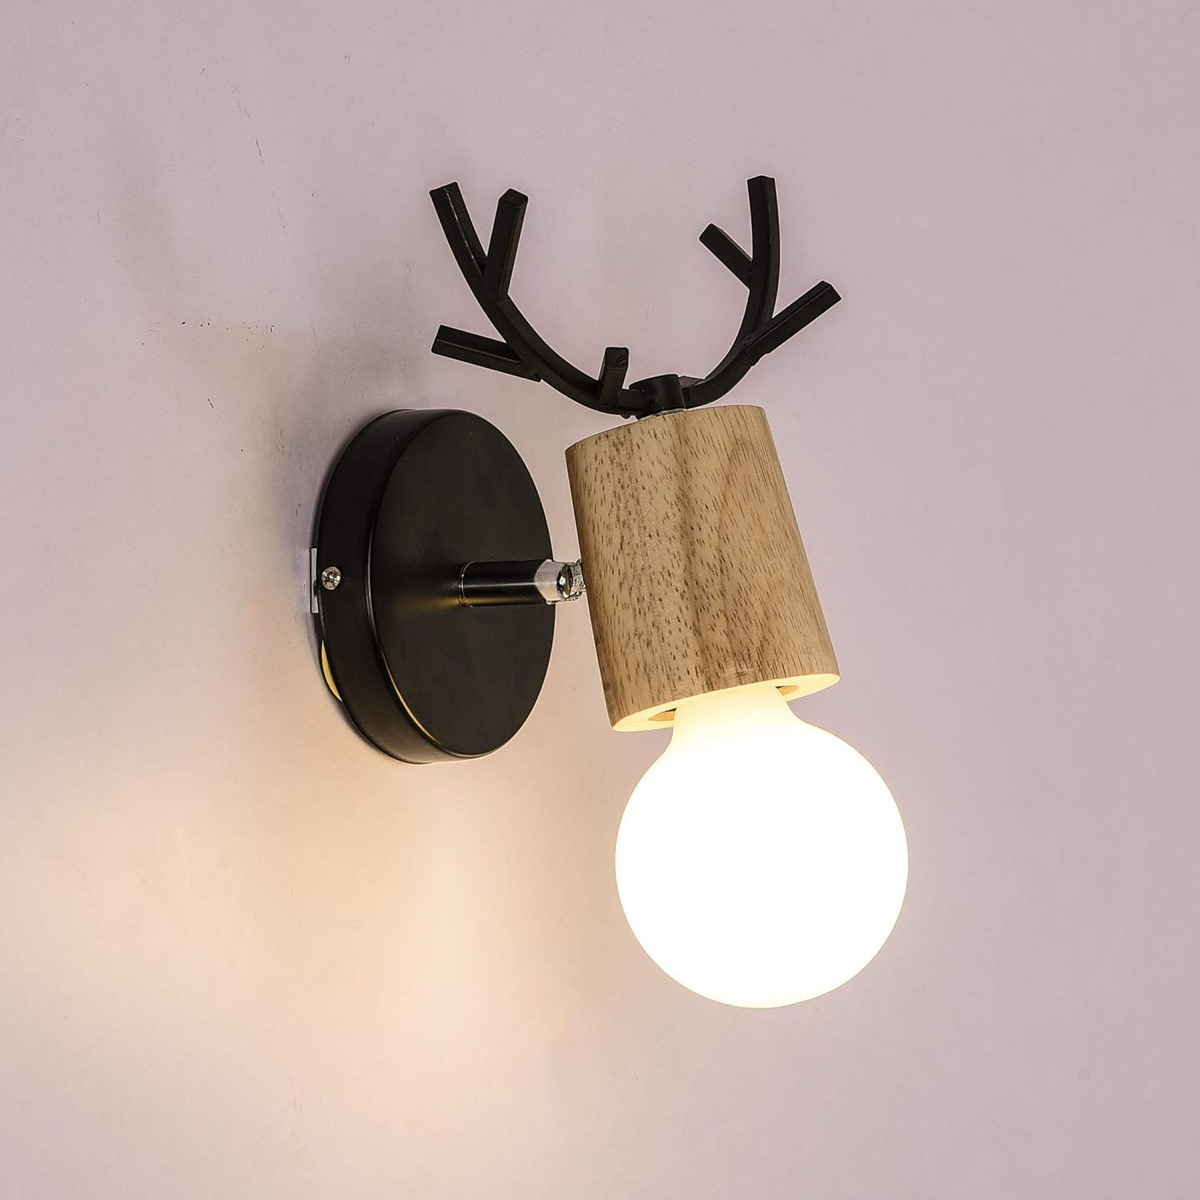 Cute-Wall-Light-With-Antlers-Wood-And-Metal-Scandinavian-Decor-Moose-Light